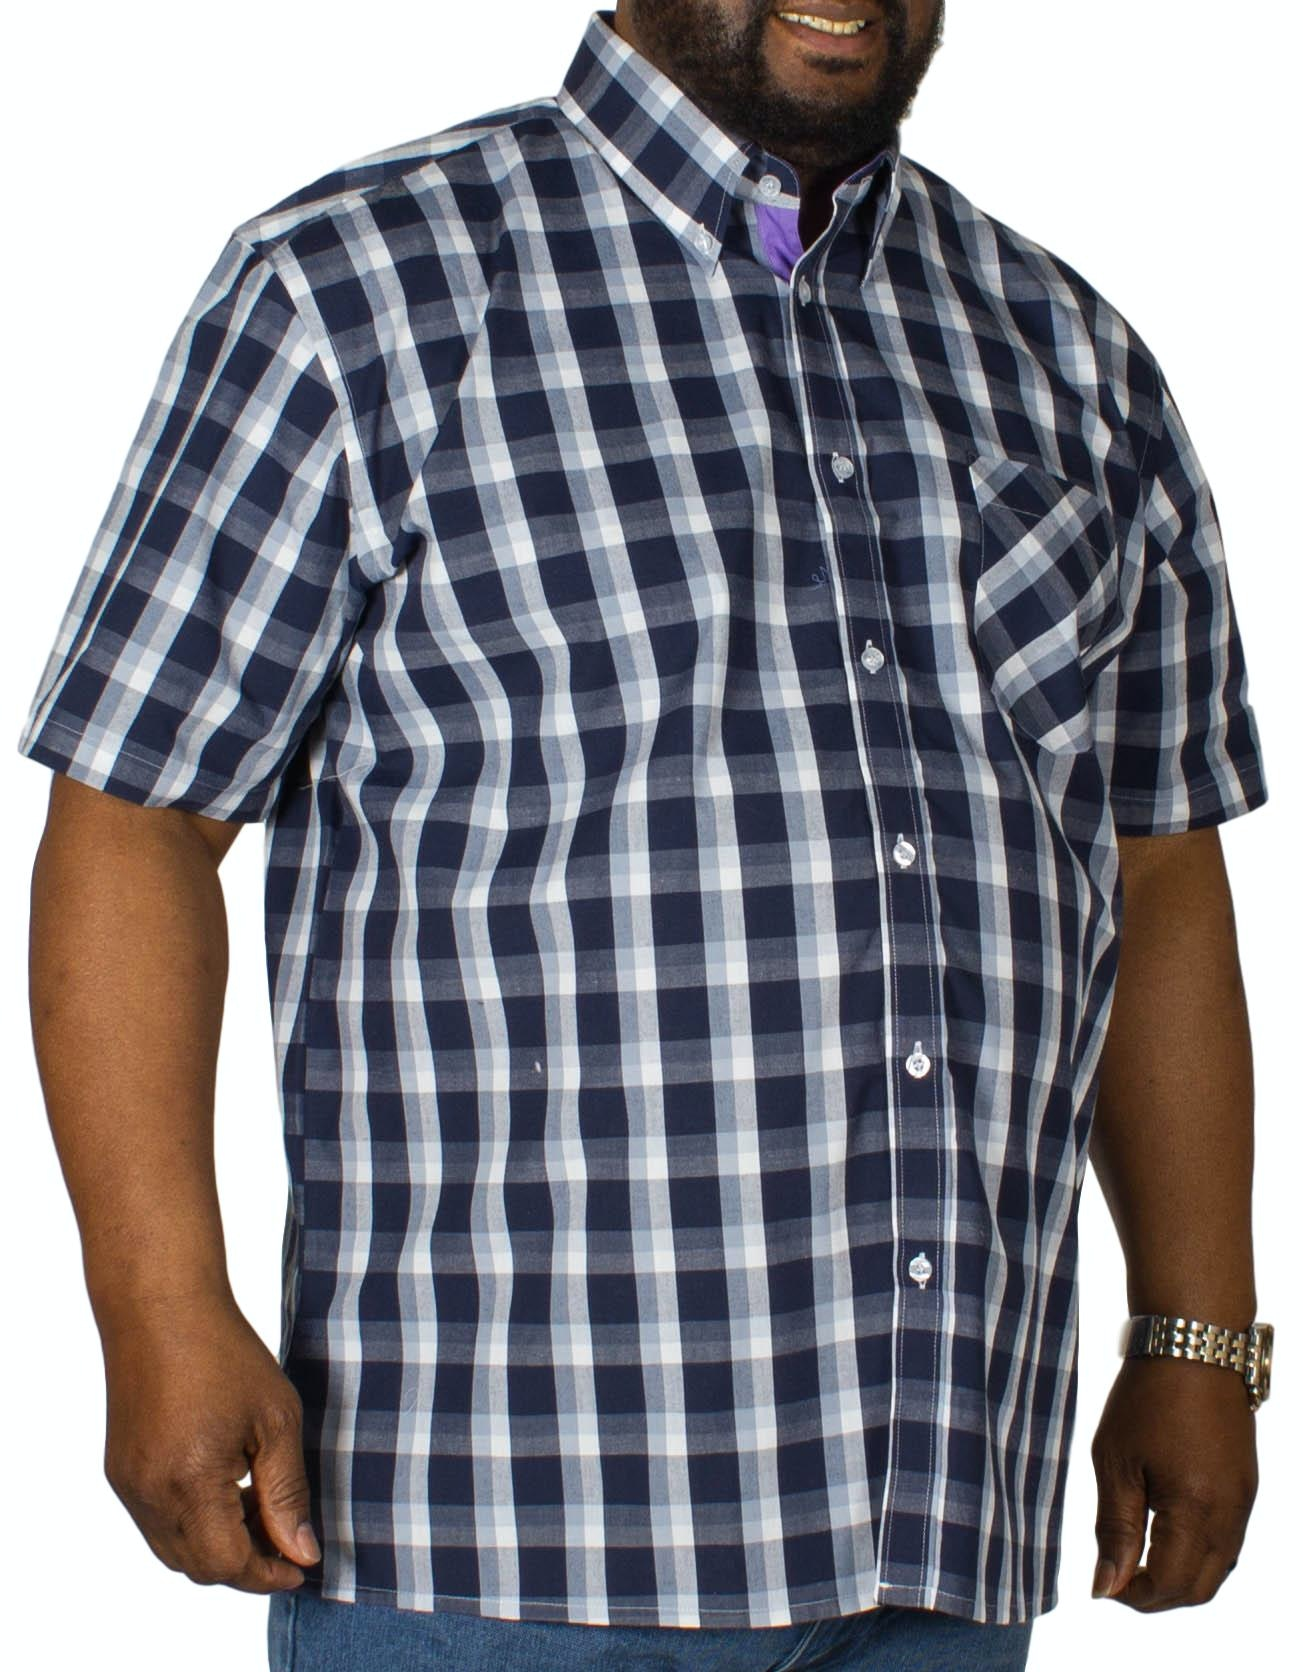 KAM Check Short Sleeved Shirt Navy